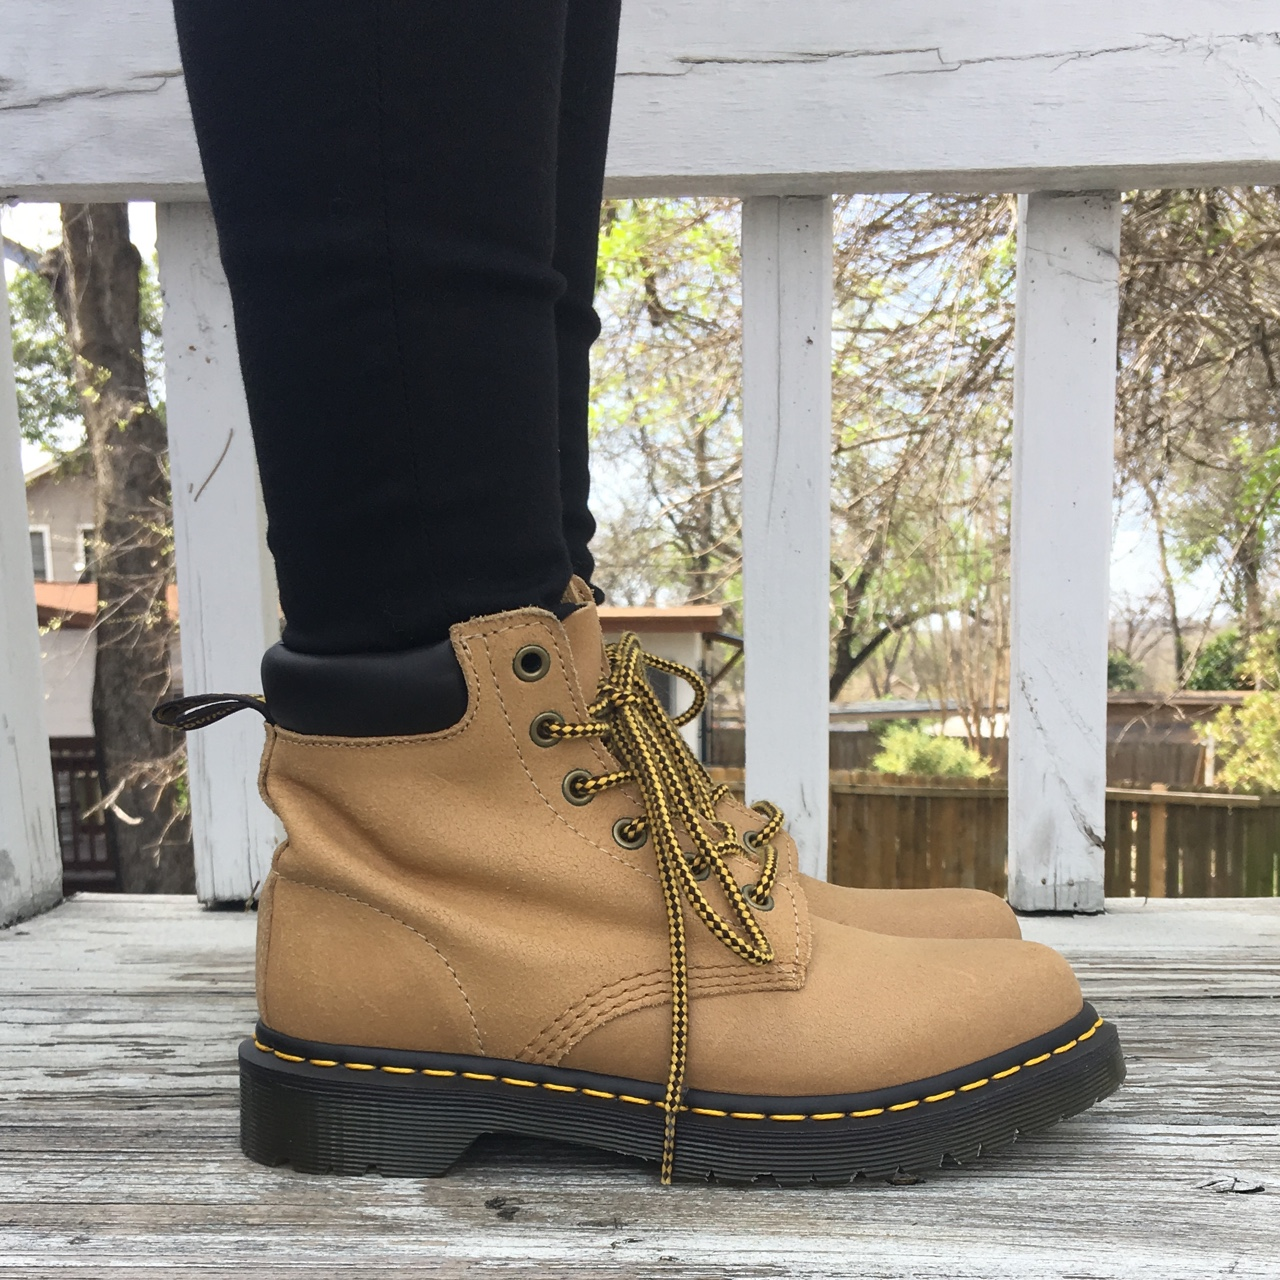 332c04172b7 Dr. Martens 939 6-Eye Hiker Boot in Khaki Suede.... - Depop